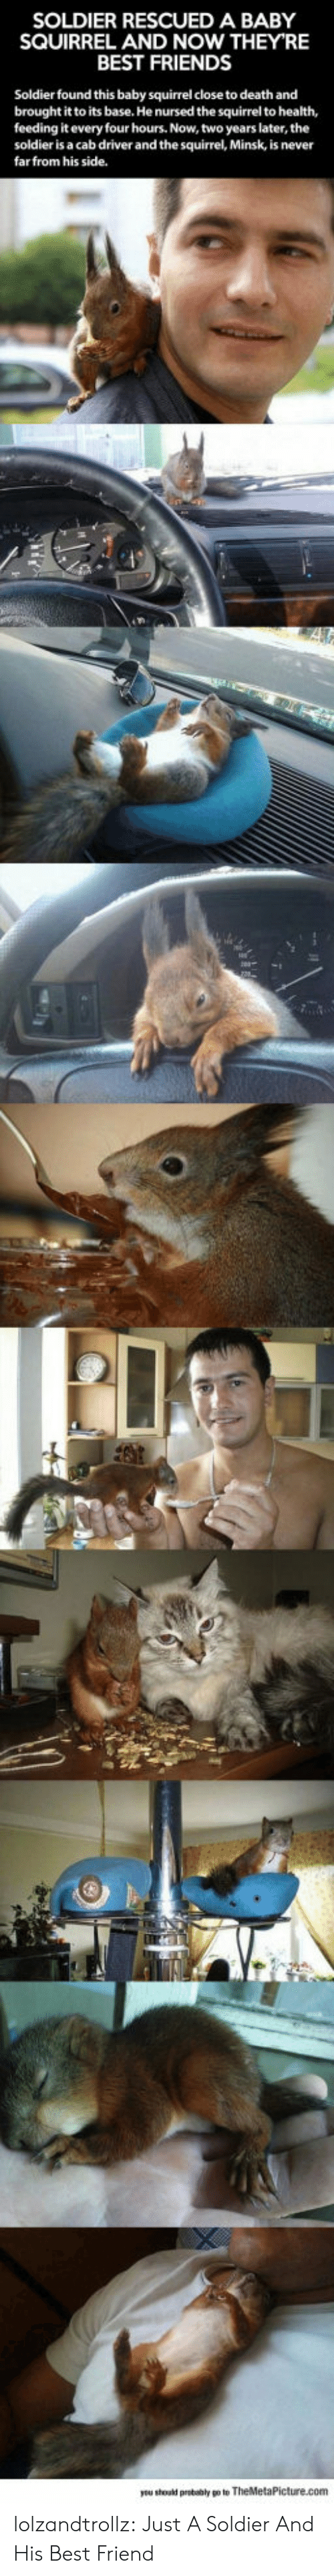 Best Friend, Friends, and Tumblr: SOLDIER RESCUED A BABY  SQUIRREL AND NOW THEY'RE  BEST FRIENDS  Soldier found this baby squirrel close to death and  brought it to its base. He nursed the squirrel to health,  feeding it every four hours. Now, two years later, the  soldier is a cab driver and the squirrel, Minsk, is never  farfrom his side. lolzandtrollz:  Just A Soldier And His Best Friend